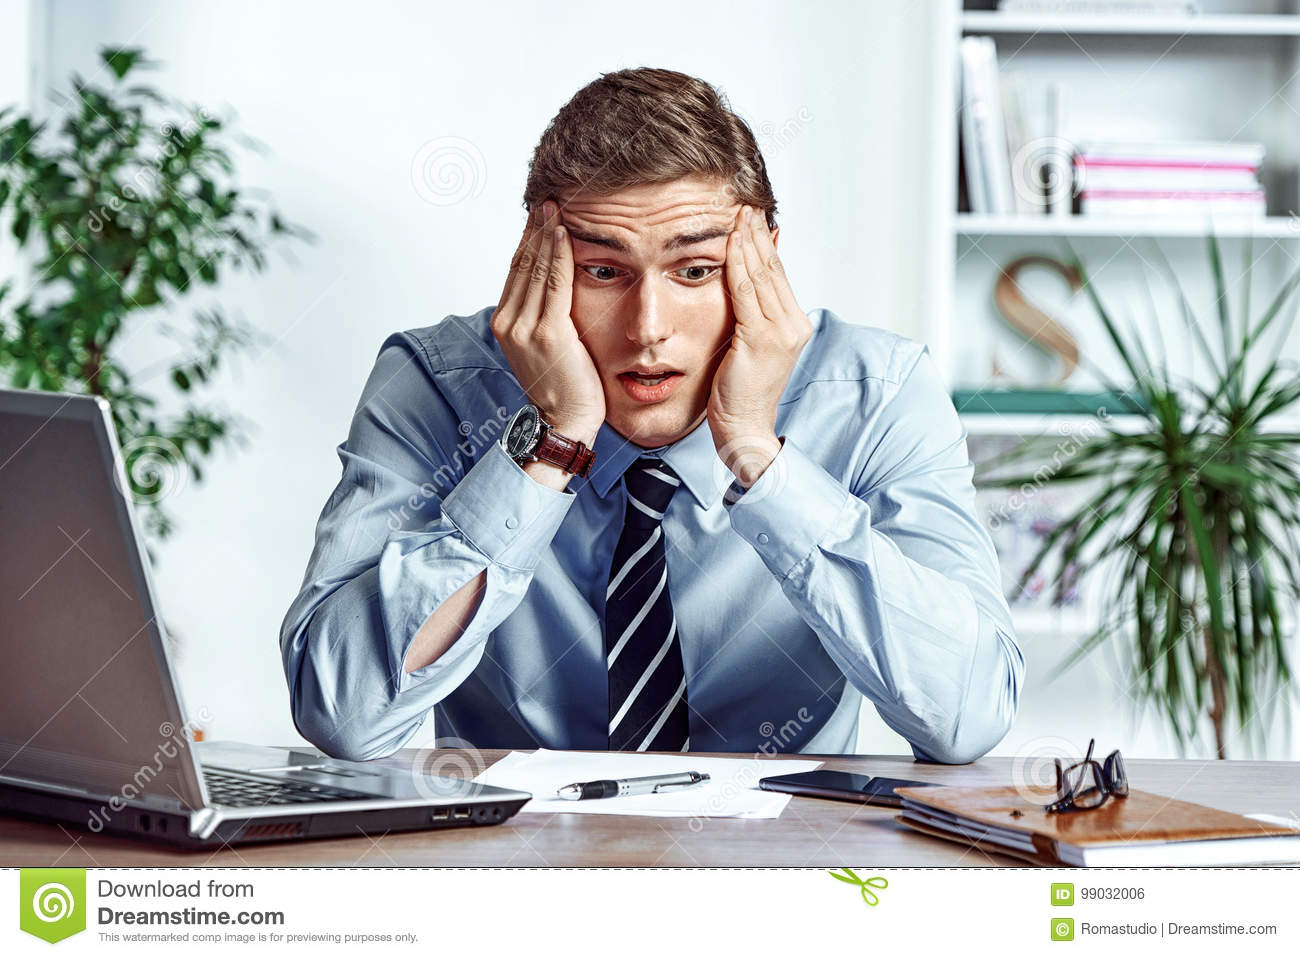 Frustrated businessman dissatisfied his earnings.